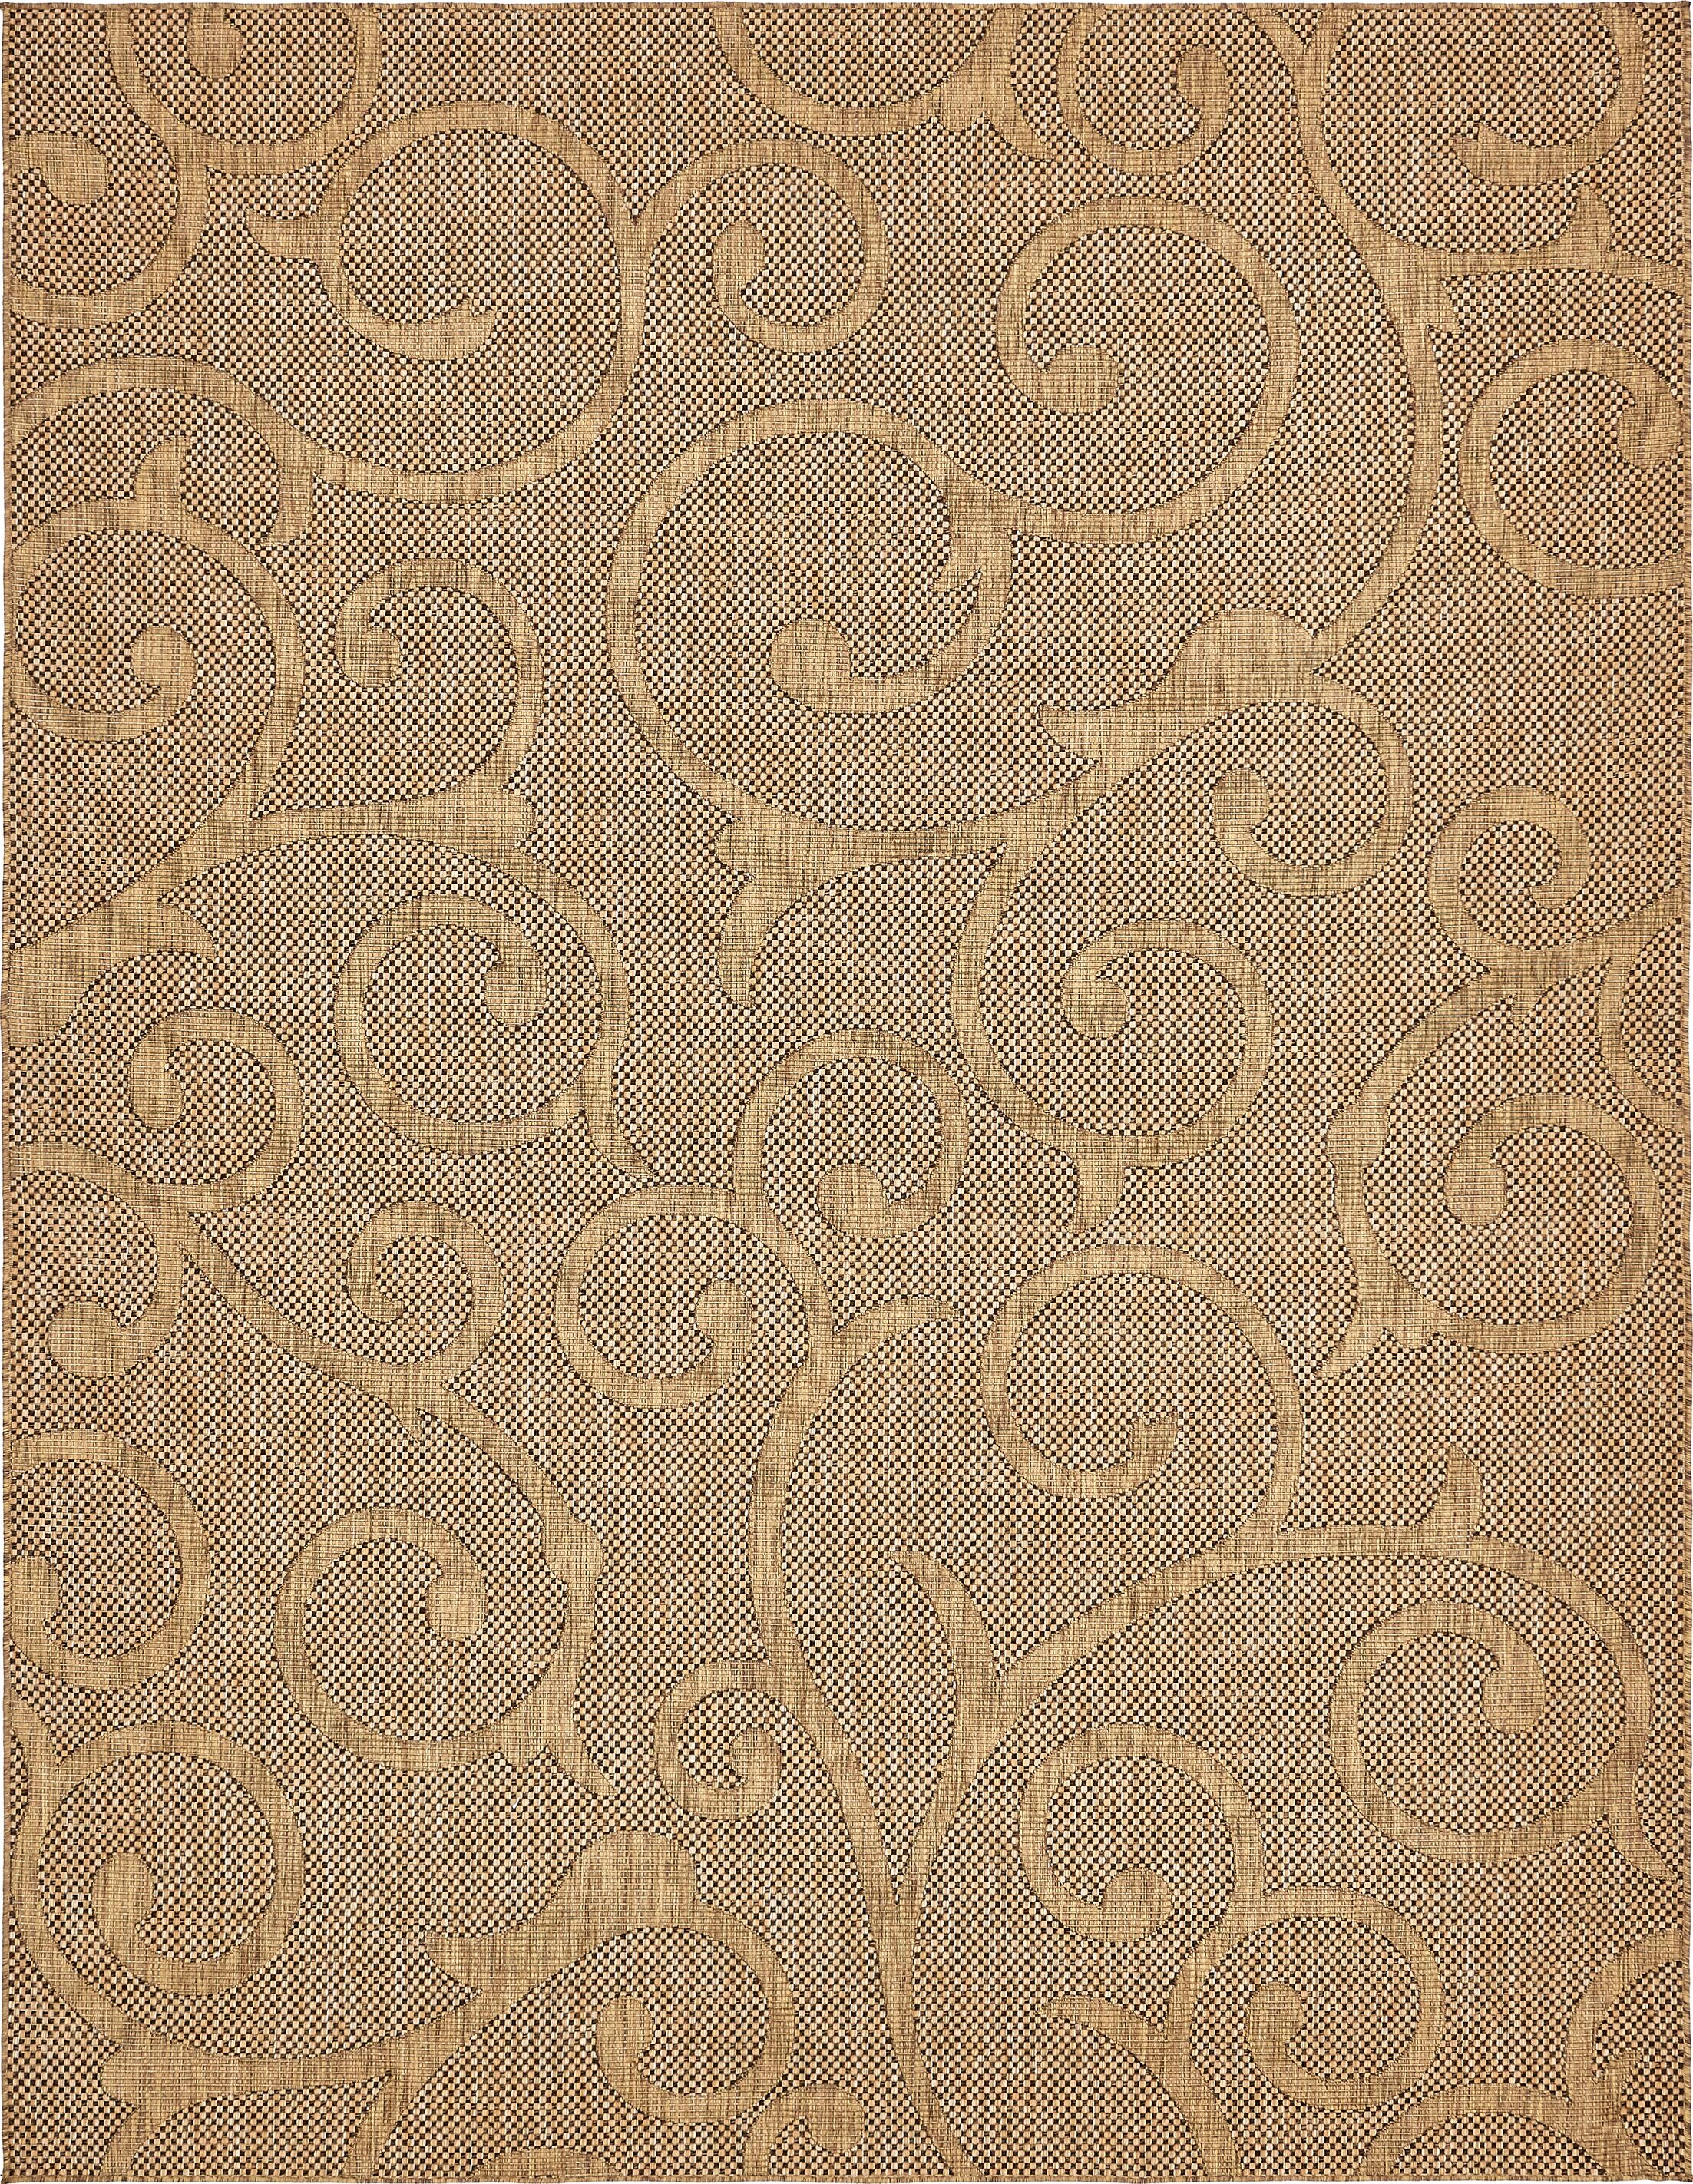 Pizano Light Brown Outdoor Area Rug Rug Size: Rectangle 9' x 12'